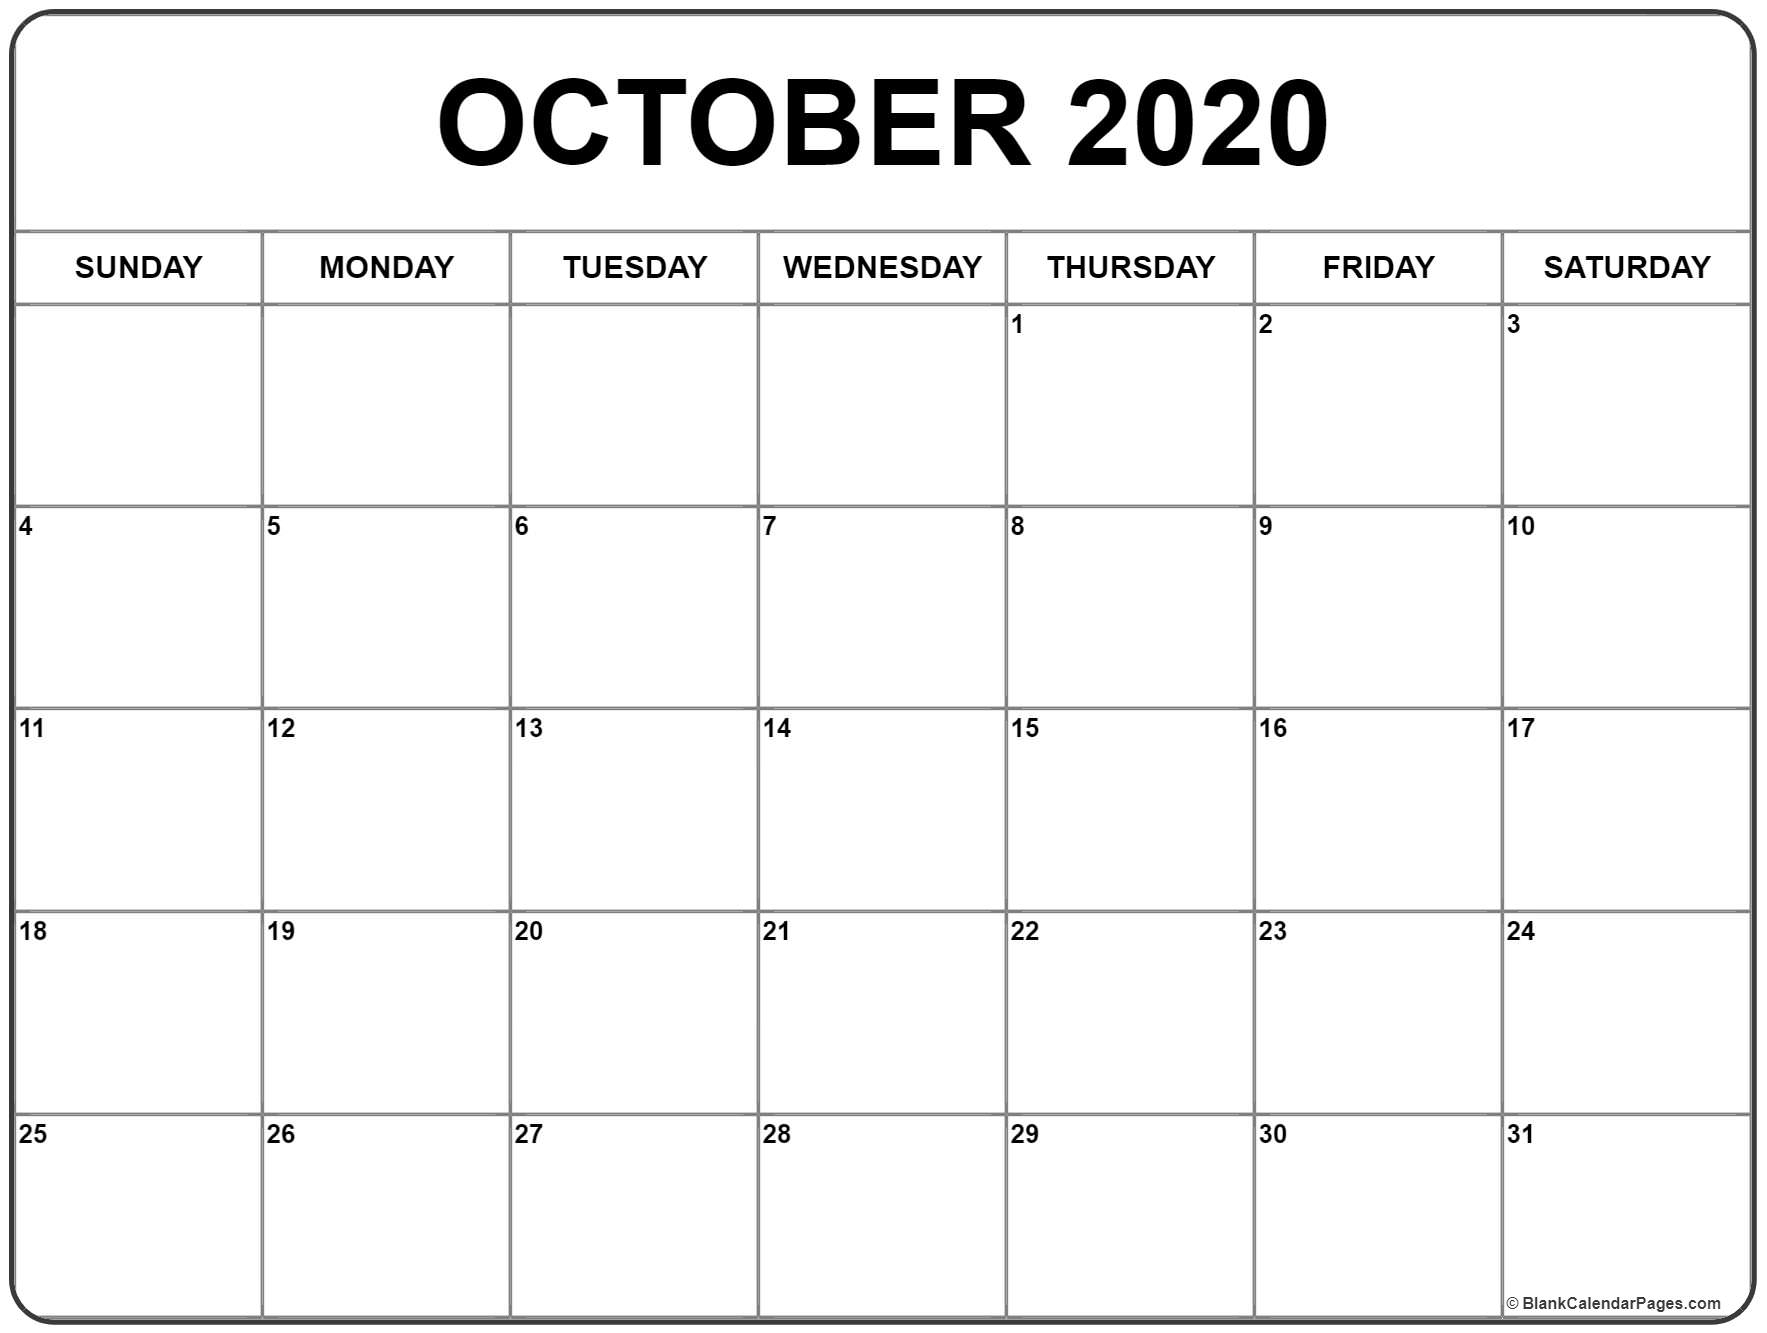 October 2020 Calendar With Holidays Printable | Isacl